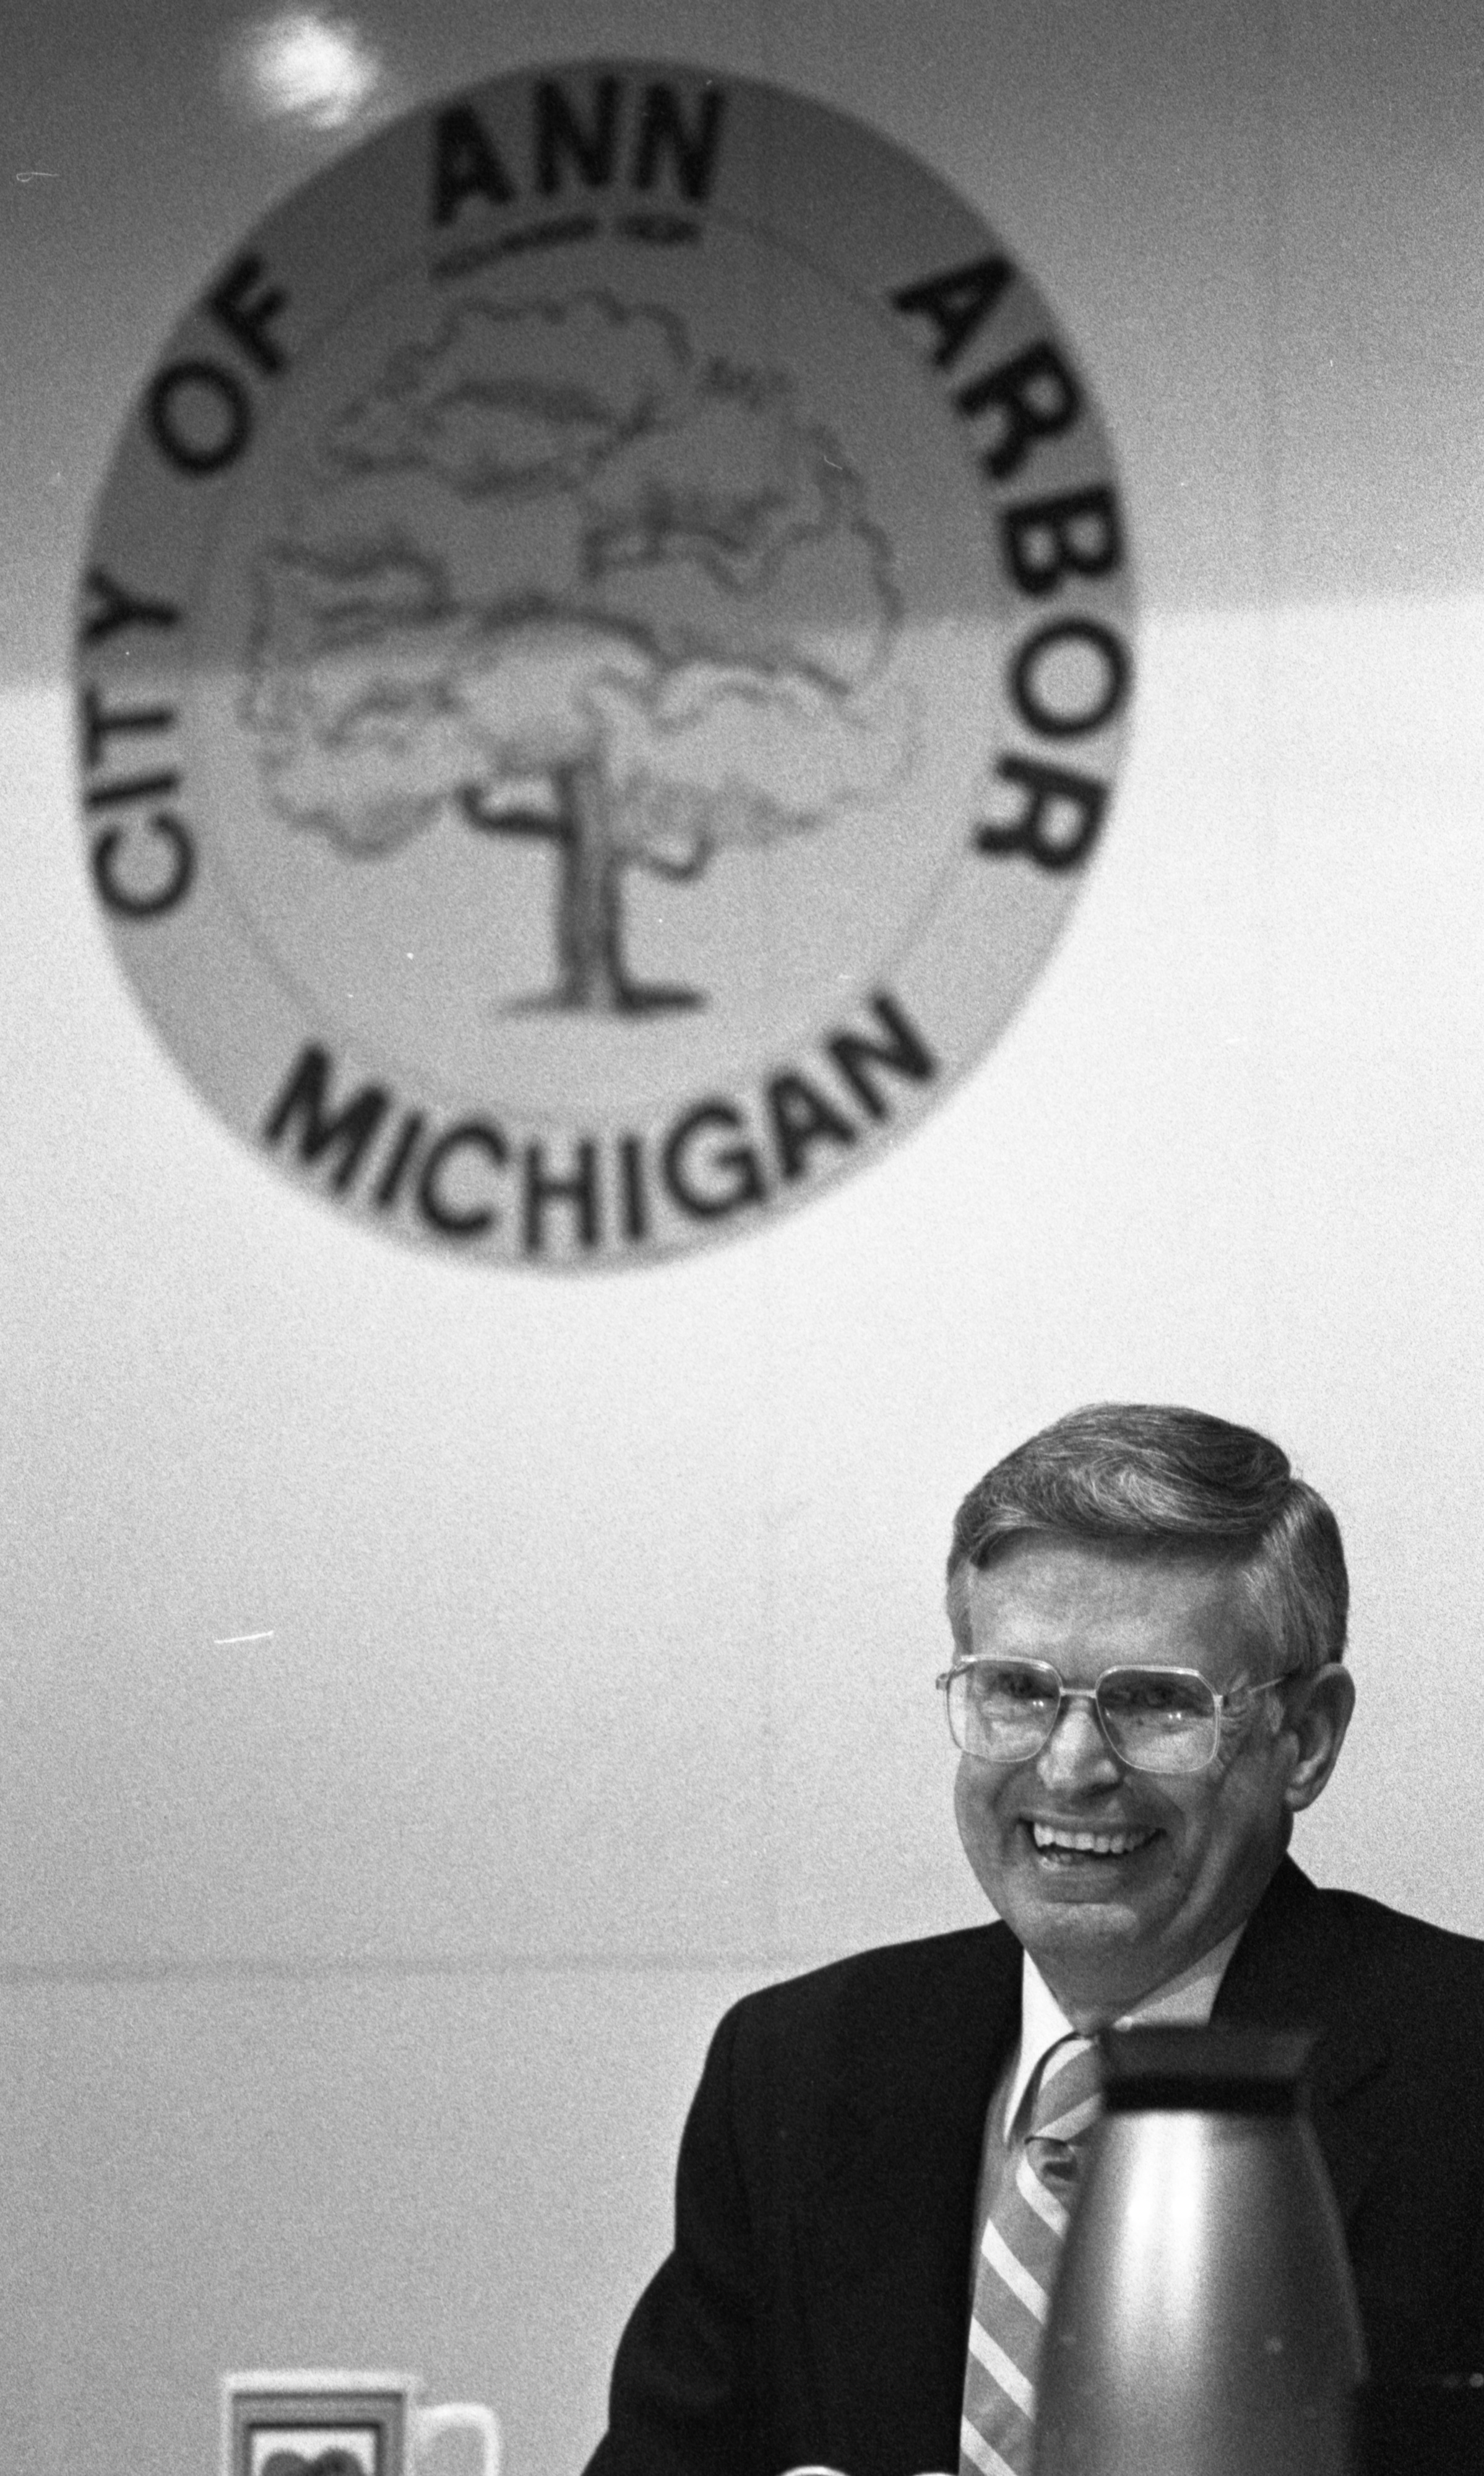 Godfrey Collins, Ann Arbor's City Manager, At His Last City Council Meeting Before Retirement, August 1988 image